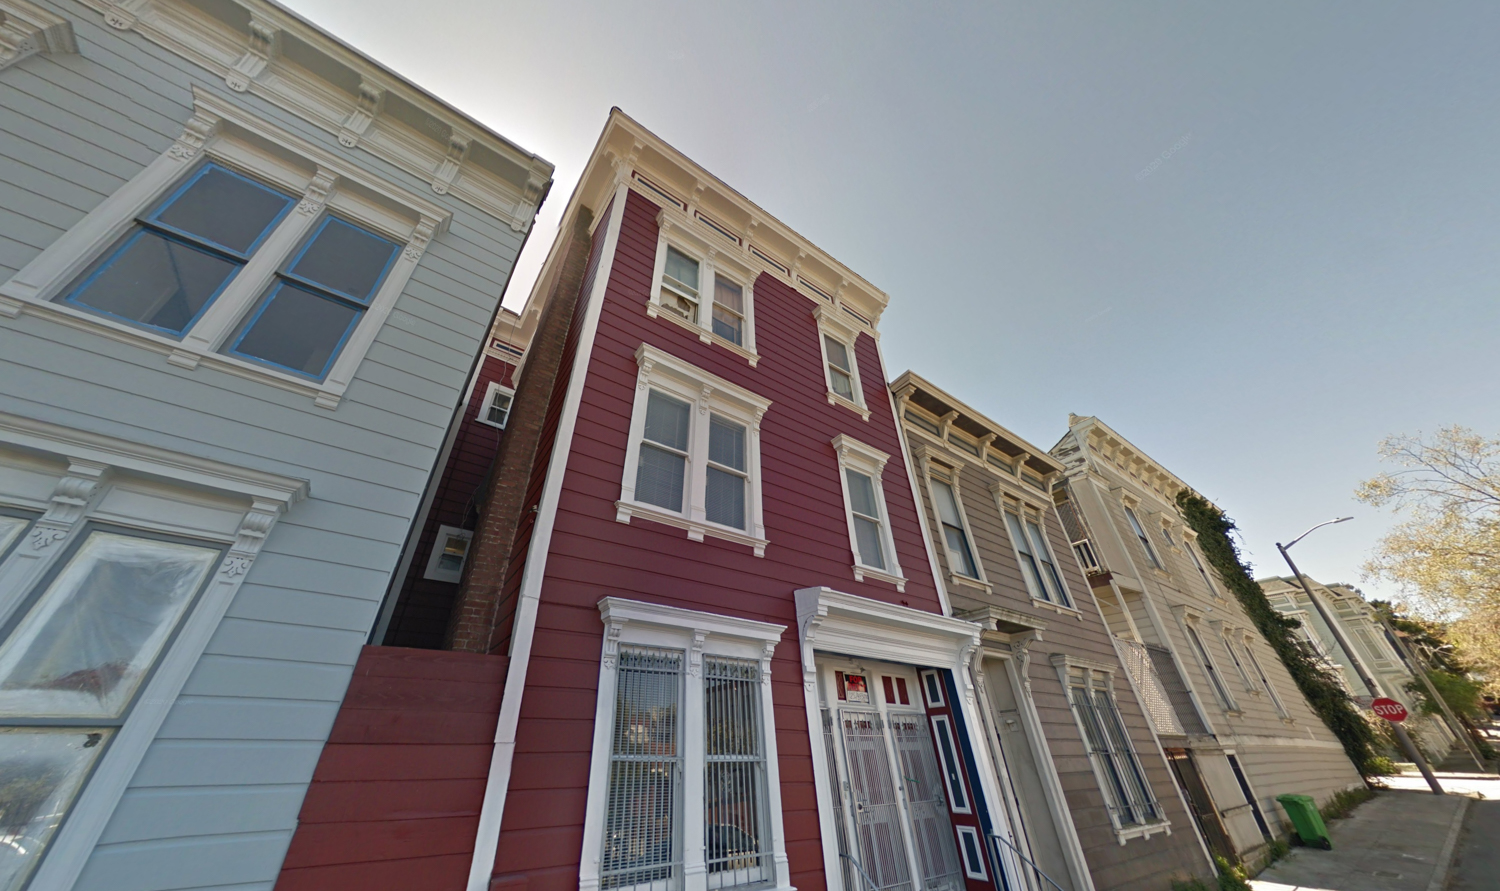 577 Ivy Street, via Google Maps